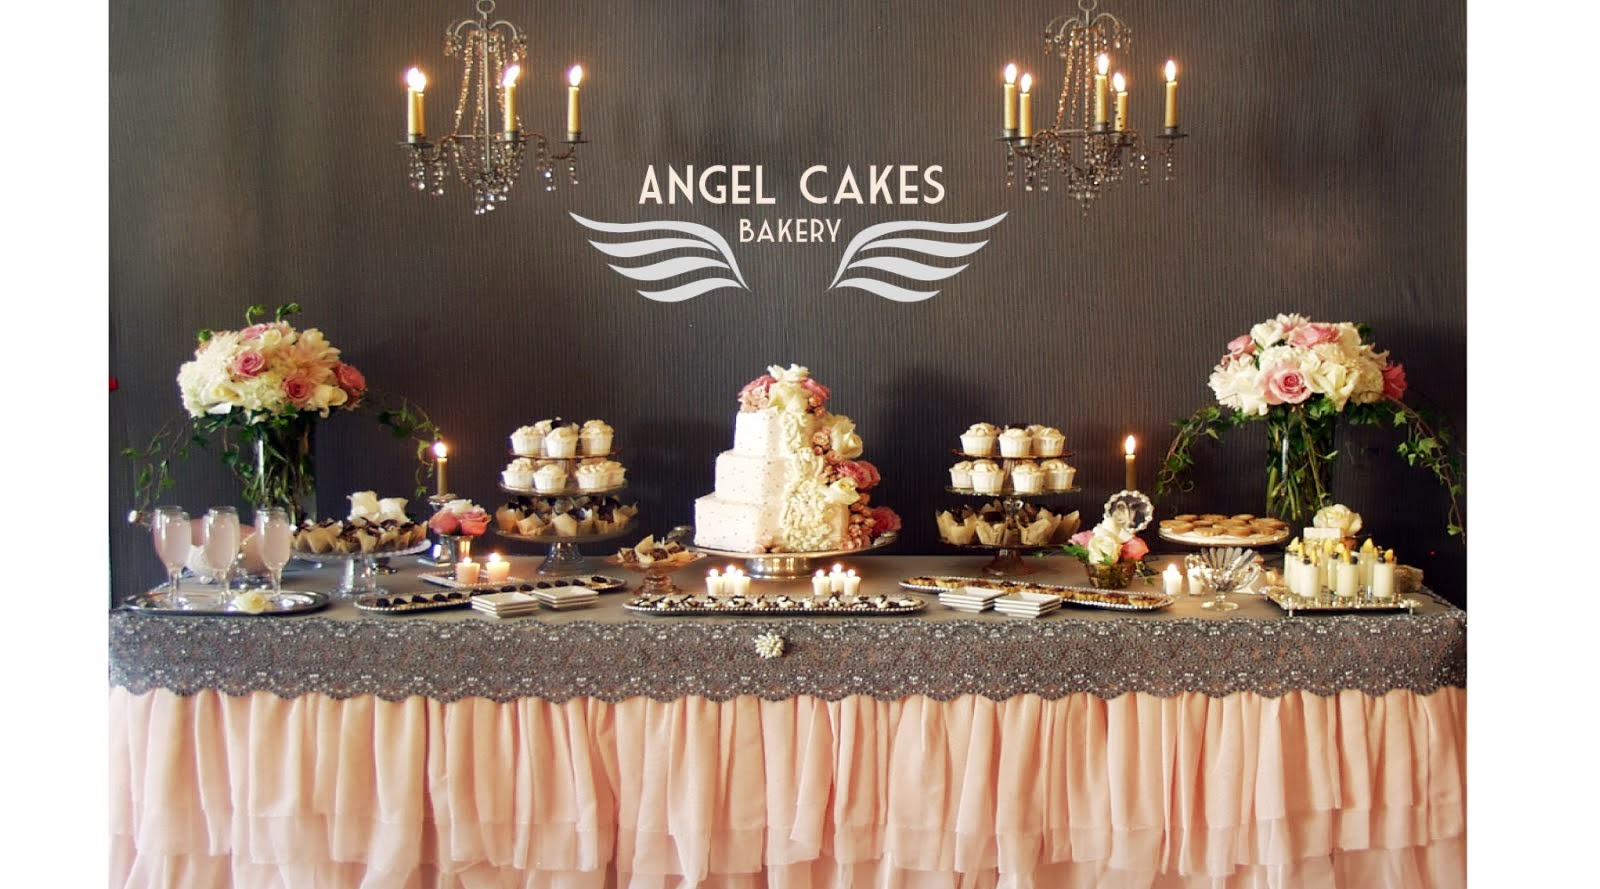 Angel Cakes Bakery